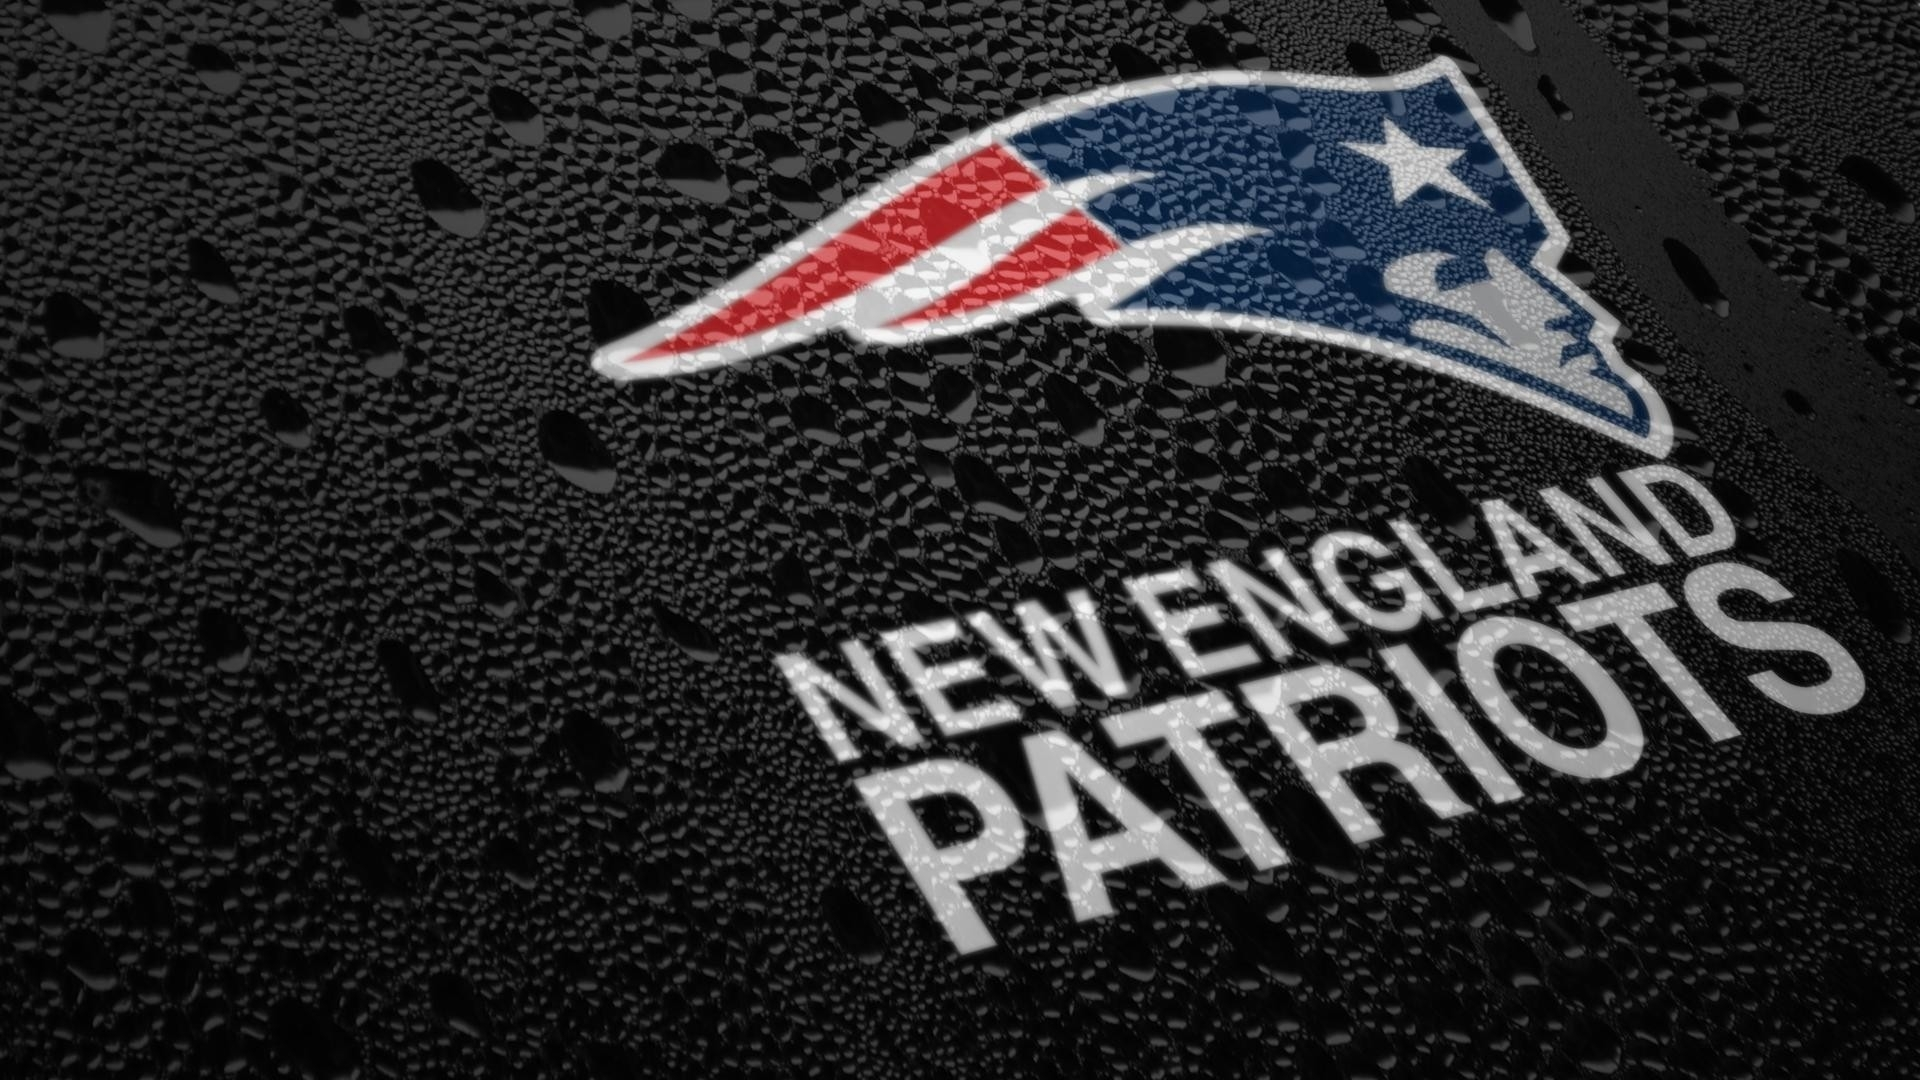 new england patriots screensaver wallpaper (68+ images)